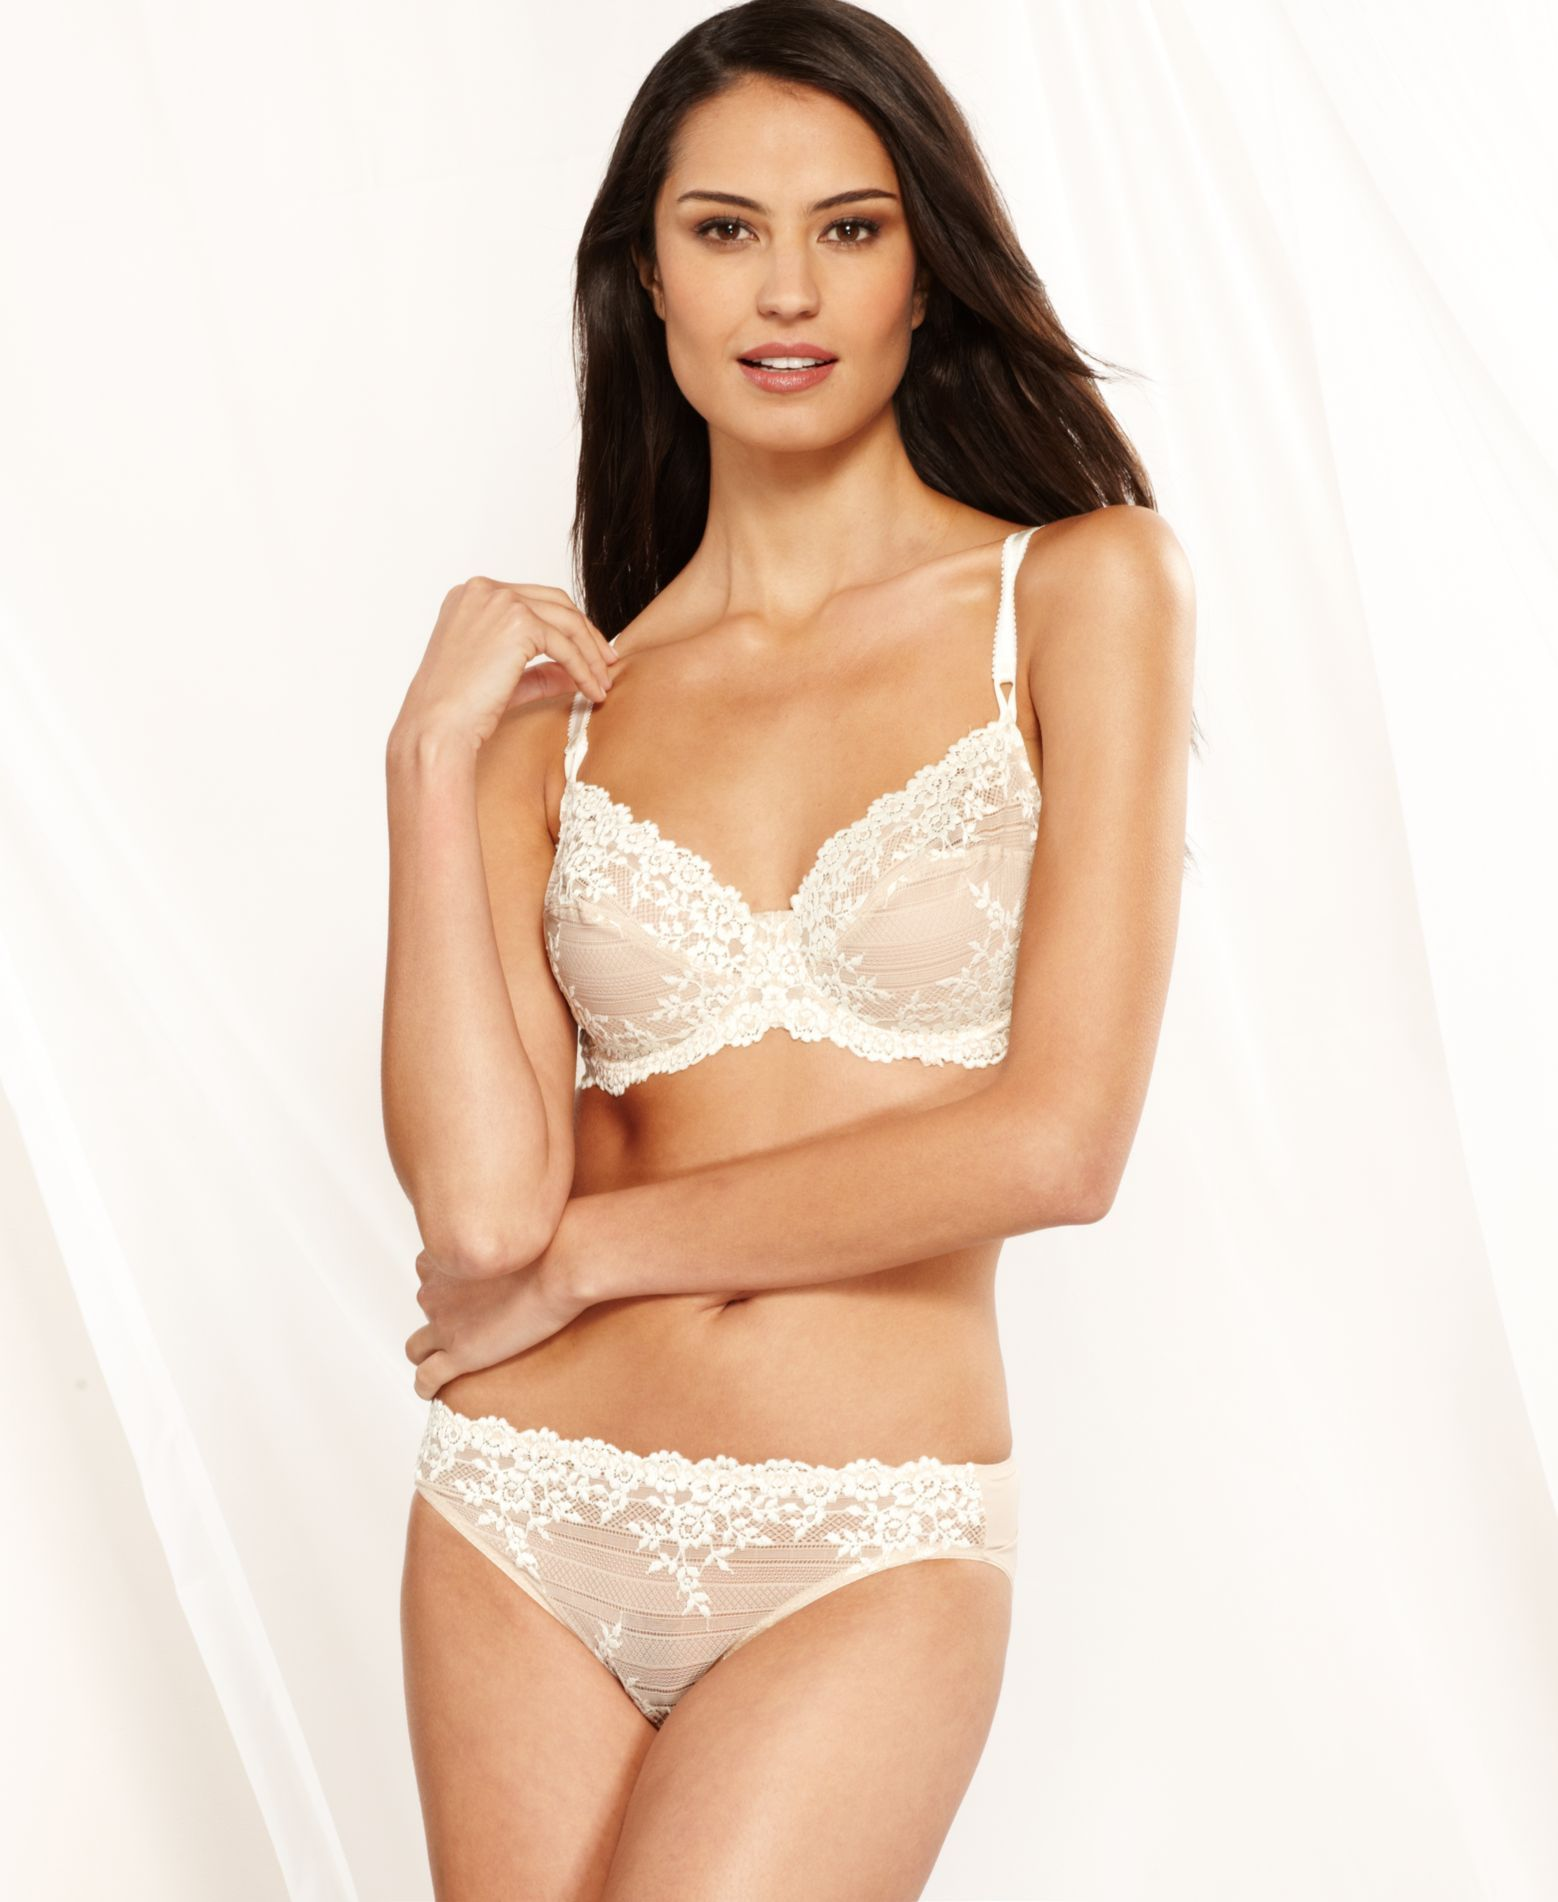 Wacoal Embrace Lace Underwire Bra 65191 | Wacoal, Wacoal bra and ...